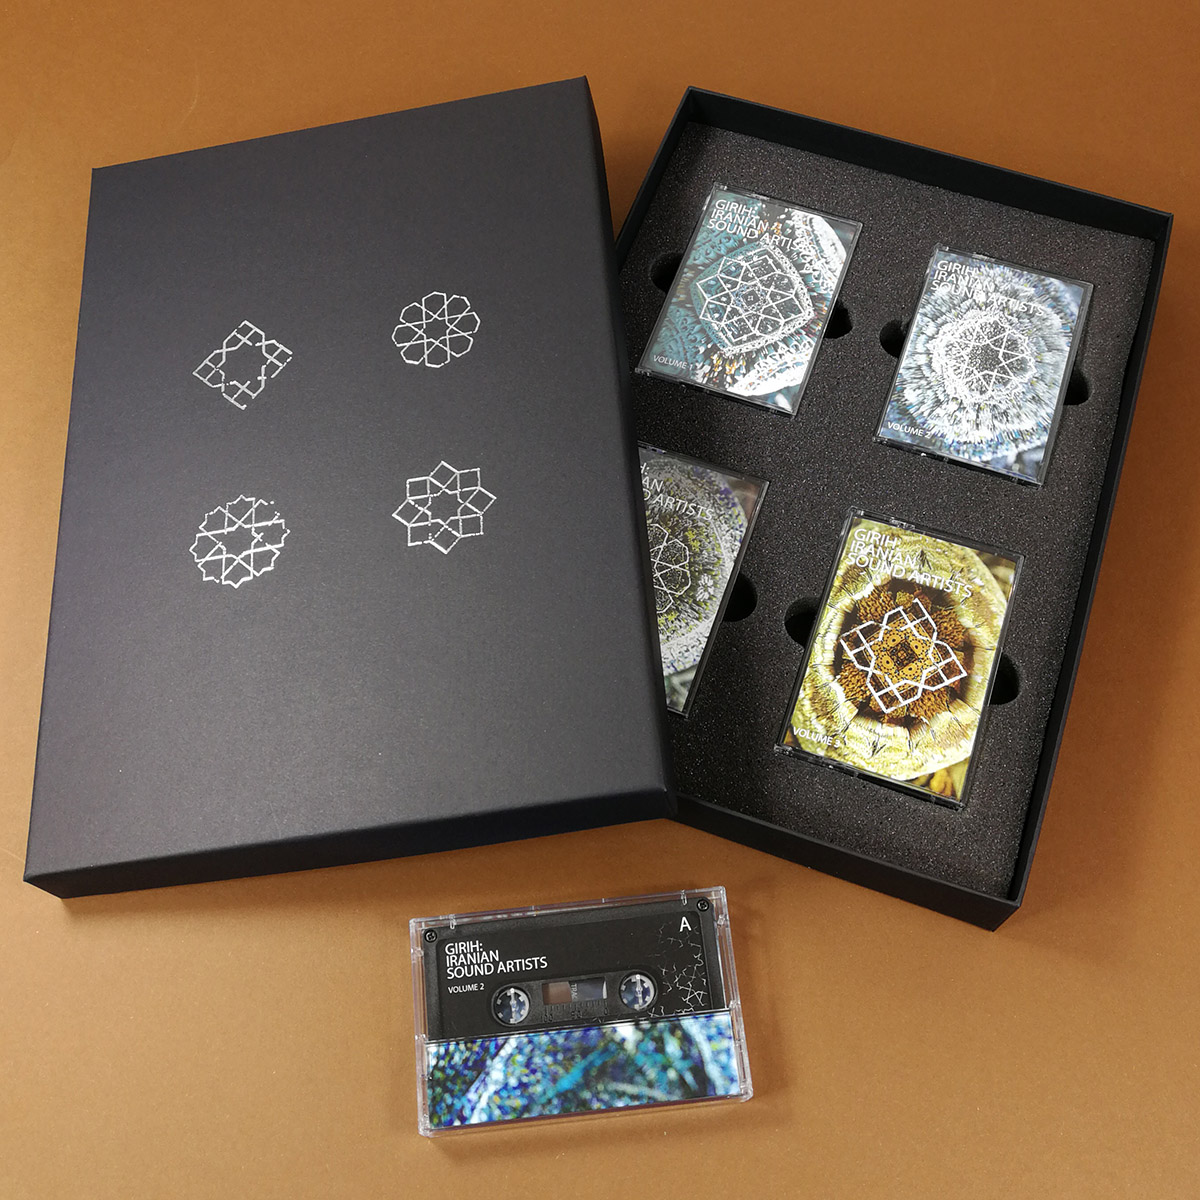 A4 quad cassette tape box set with silver foil lid printing